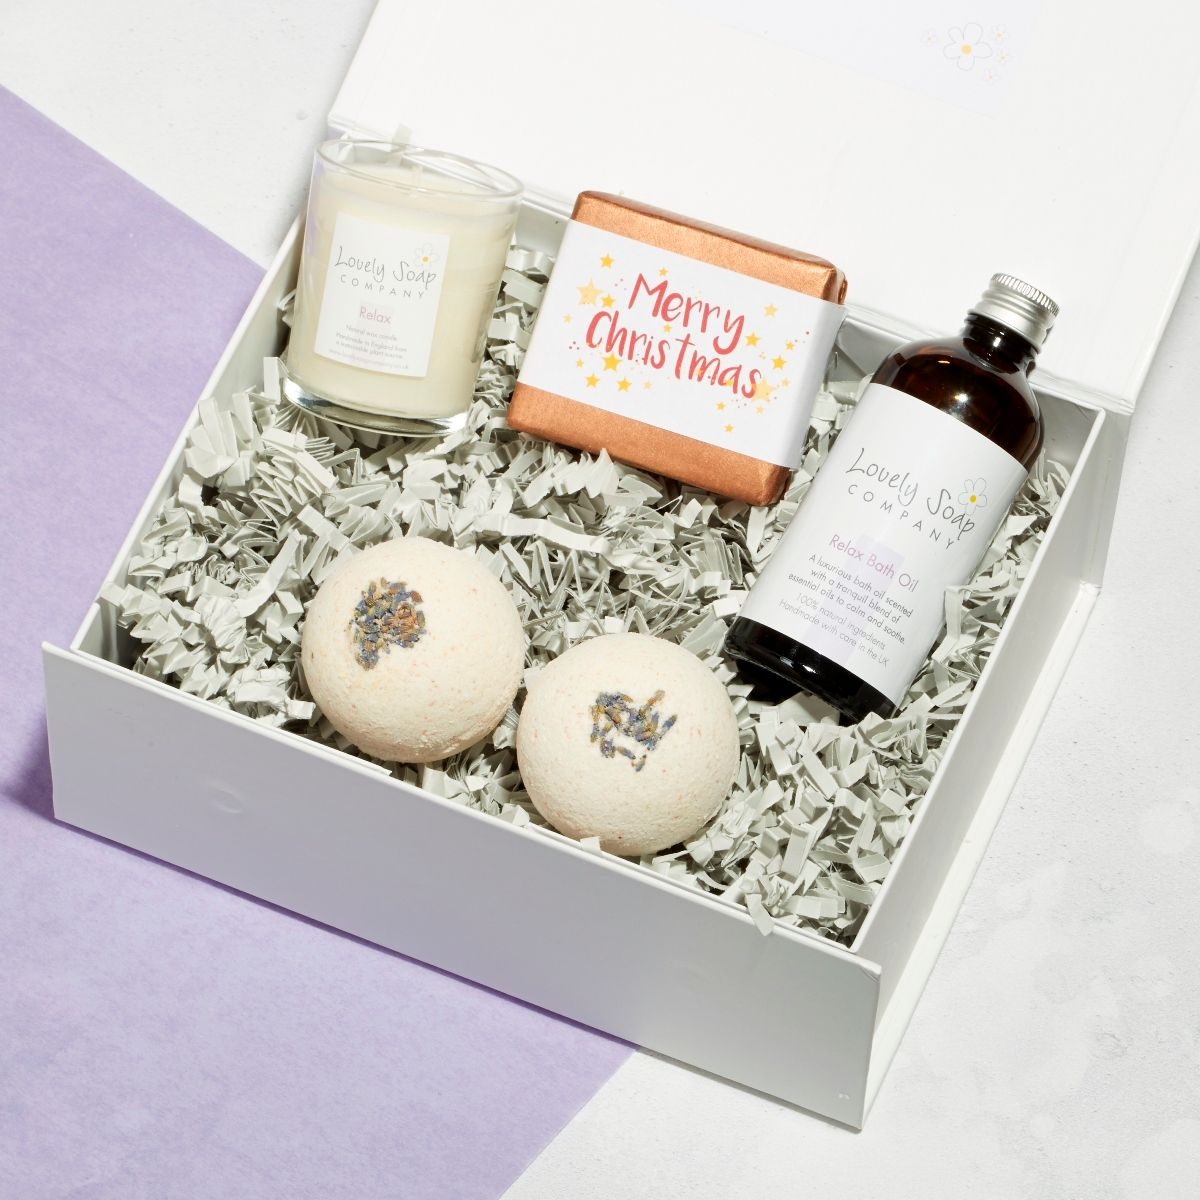 relaxing xmas pamper hamper with lavender bath bombs, relaxing bath oil, lavender candle, lavender soap